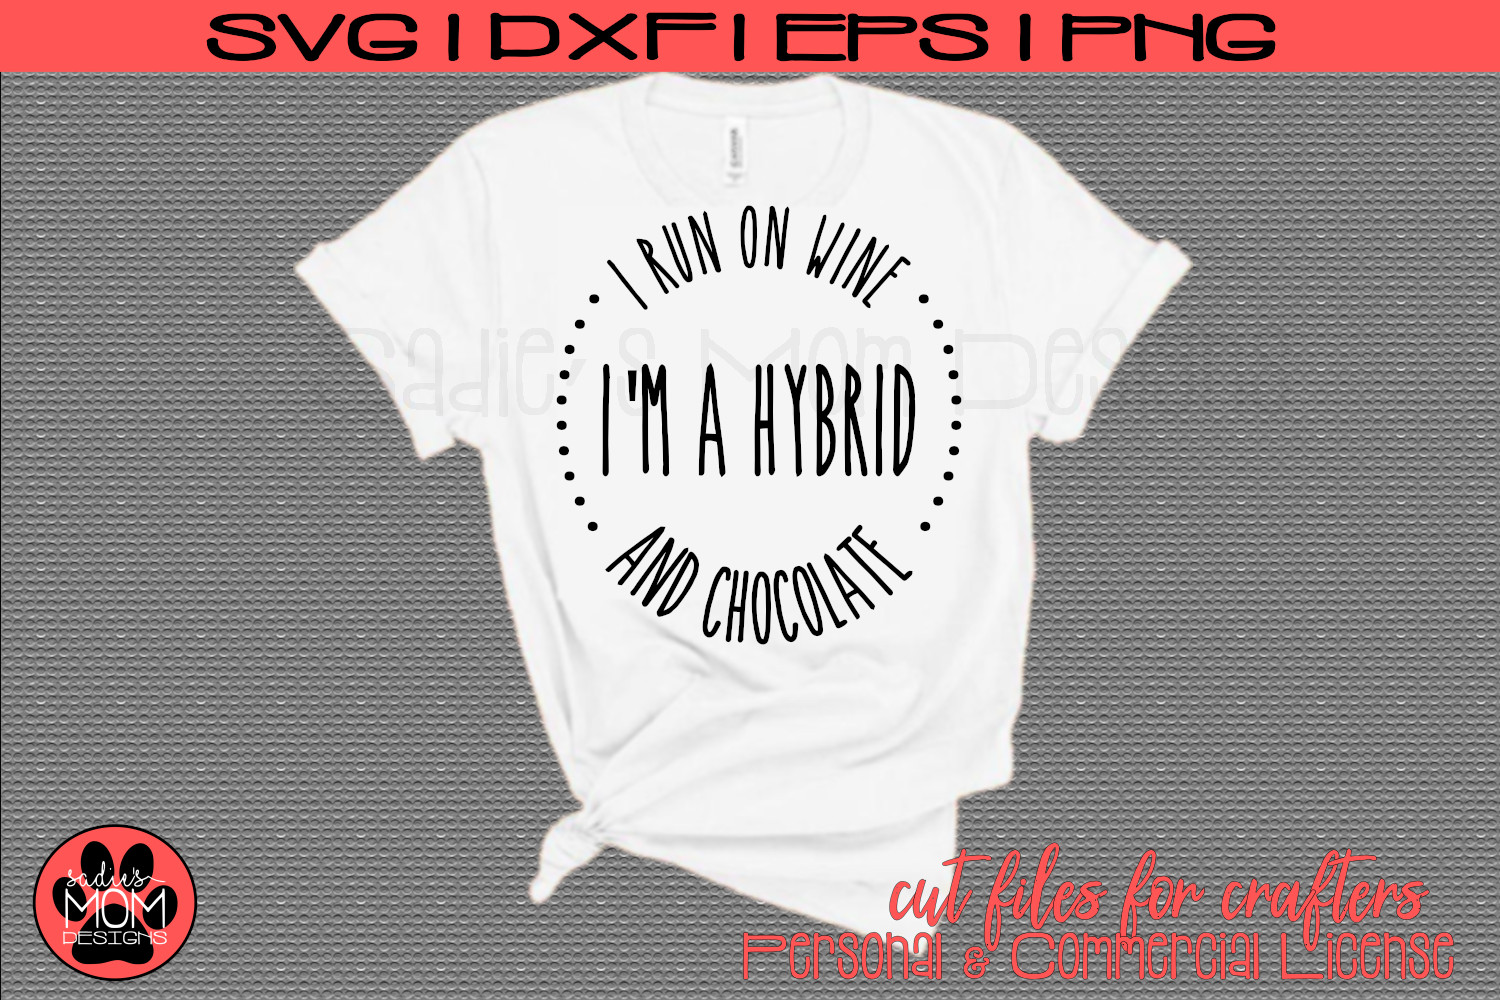 I'm a Hybrid - I run on Wine and Chocolate |SVG Cut File example image 1